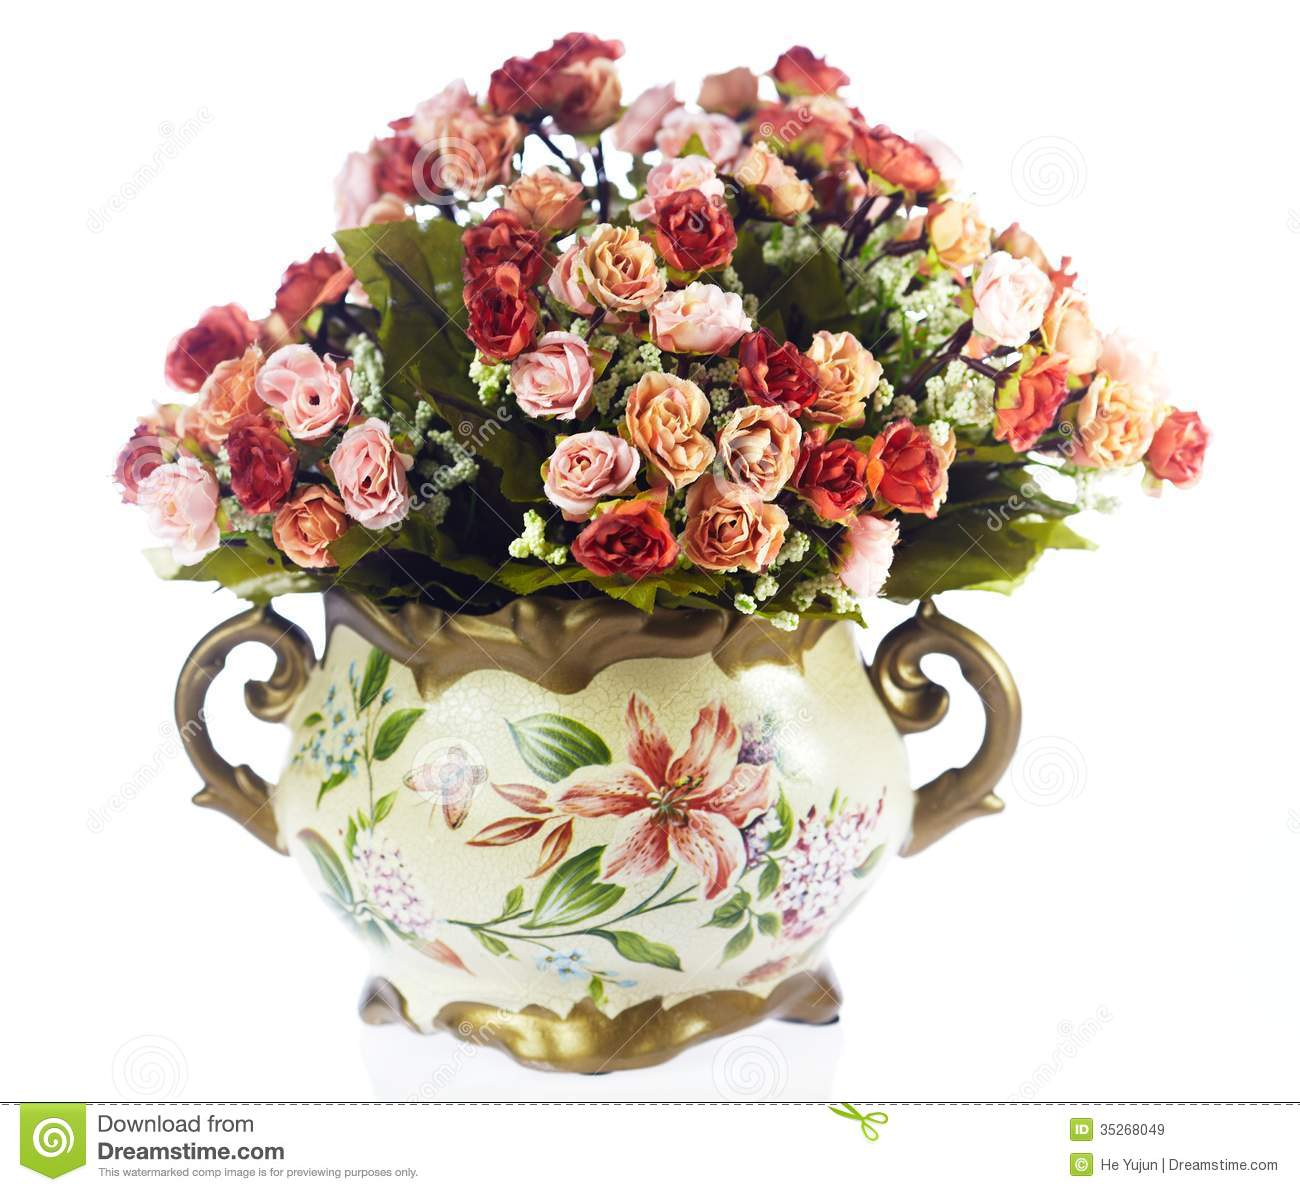 Vases With Flowers Stock Image Image Of Home Flower 35268049